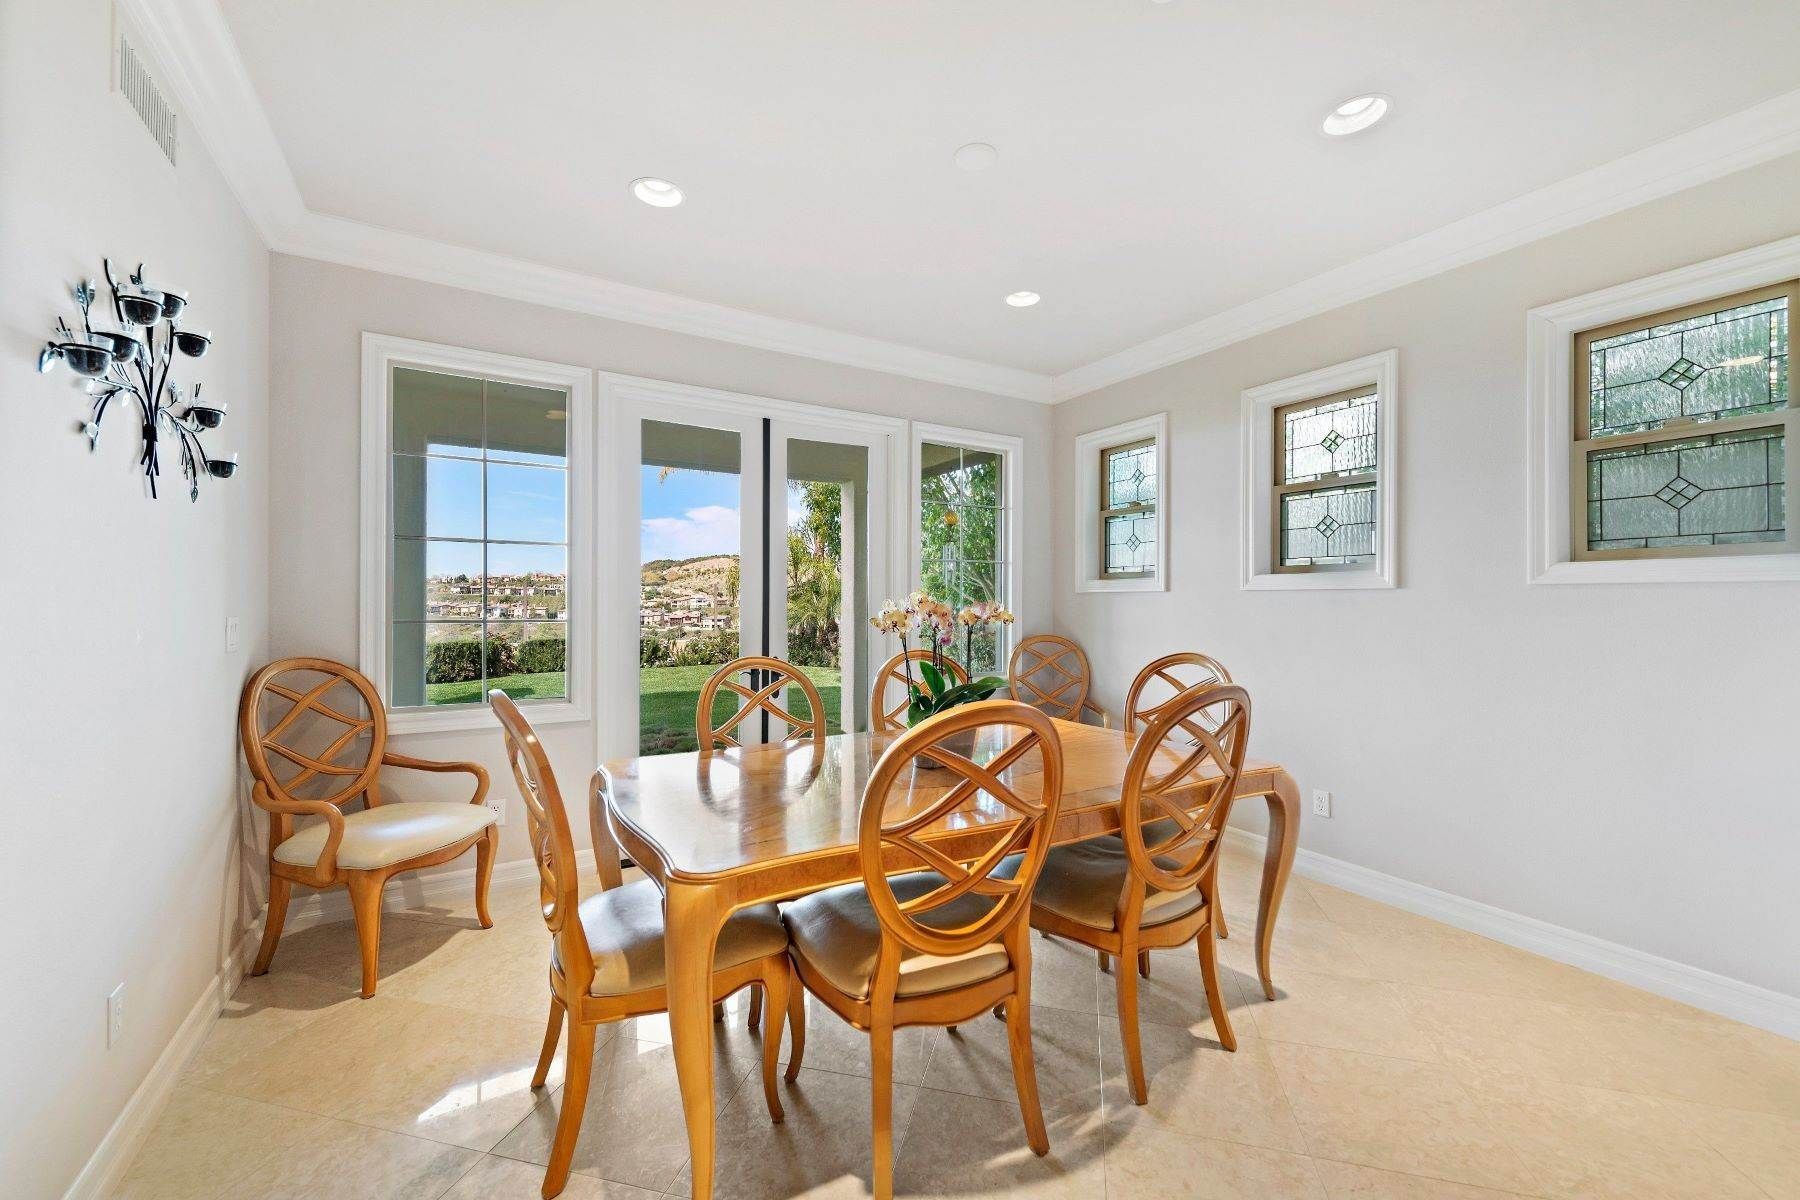 11. Single Family Homes for Sale at 53 Via Cartama, San Clemente, CA 92673 53 Via Cartama San Clemente, California 92673 United States